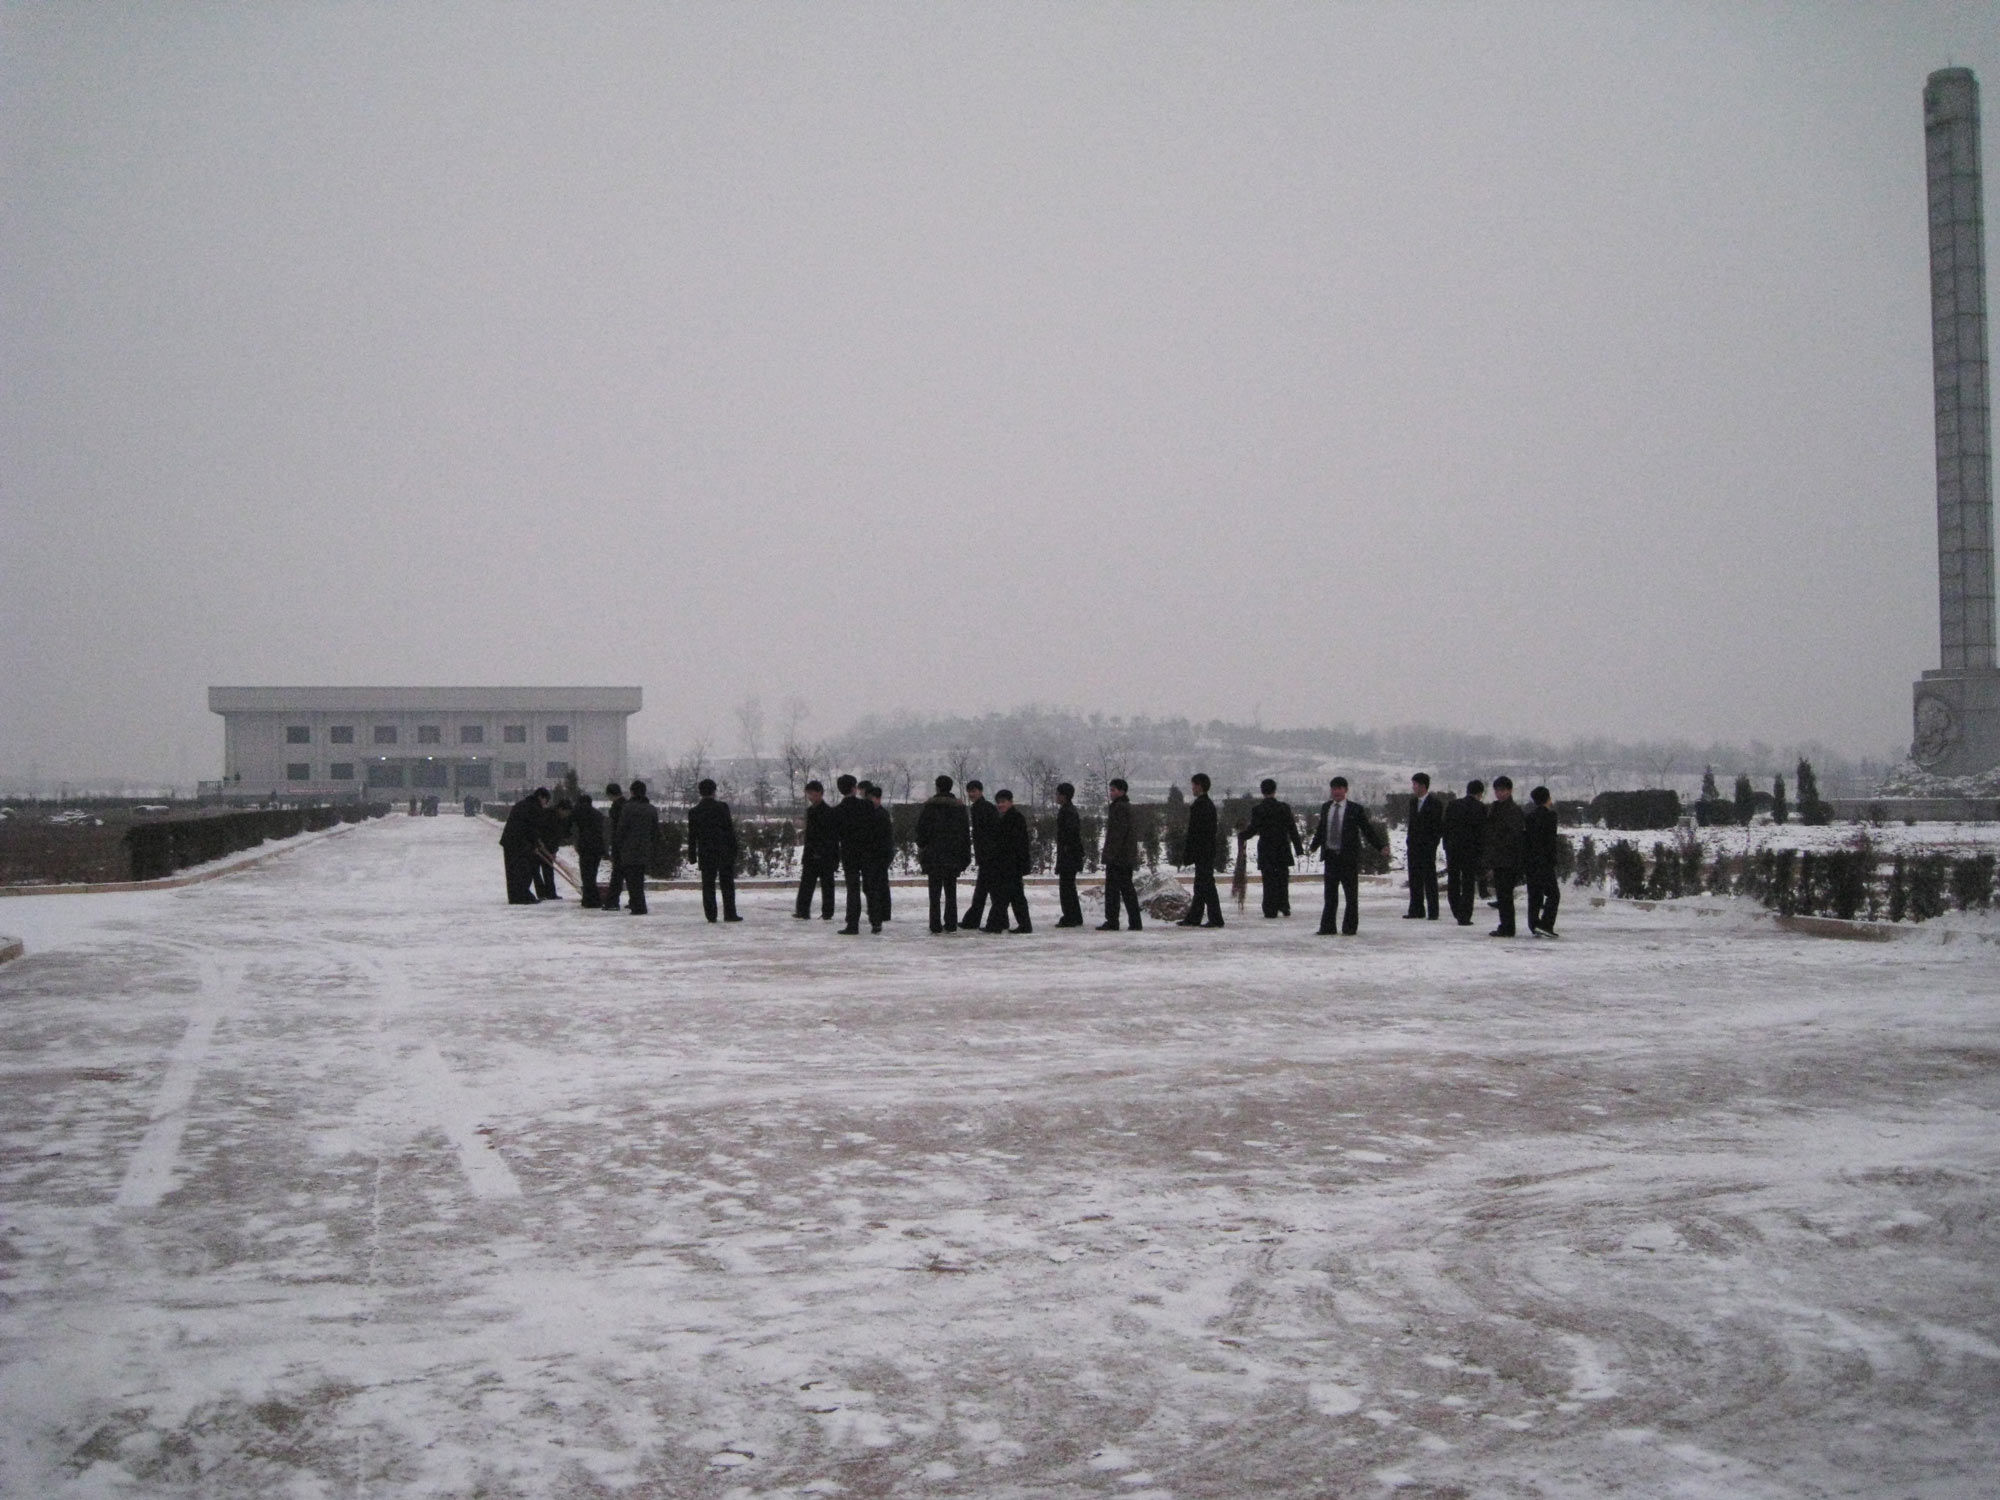 PUST students on a snowy day after an exam; Kim Jong-il's death would be announced just a few days later.